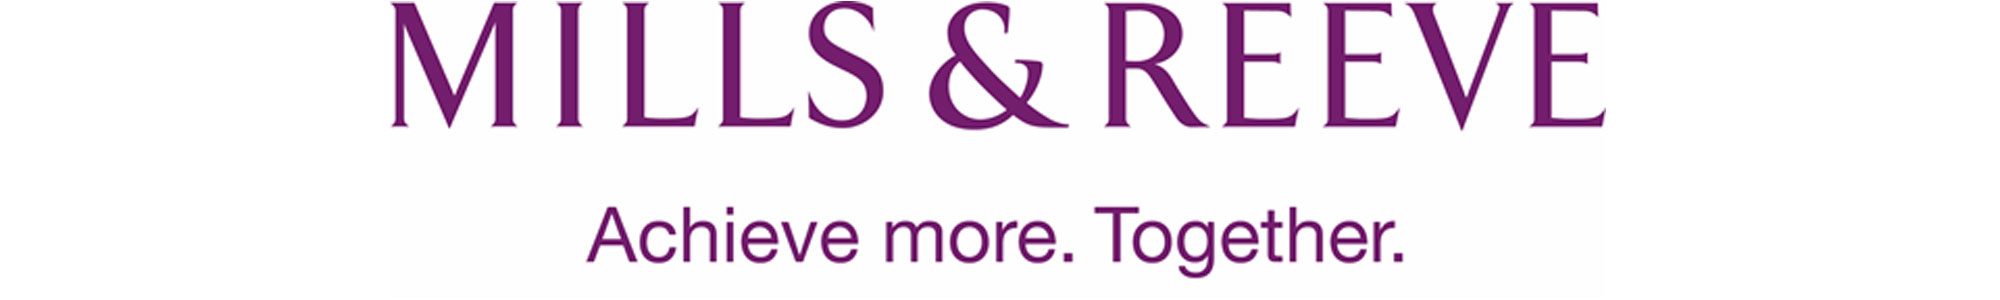 Mills & Reeve Trainee Recruitment